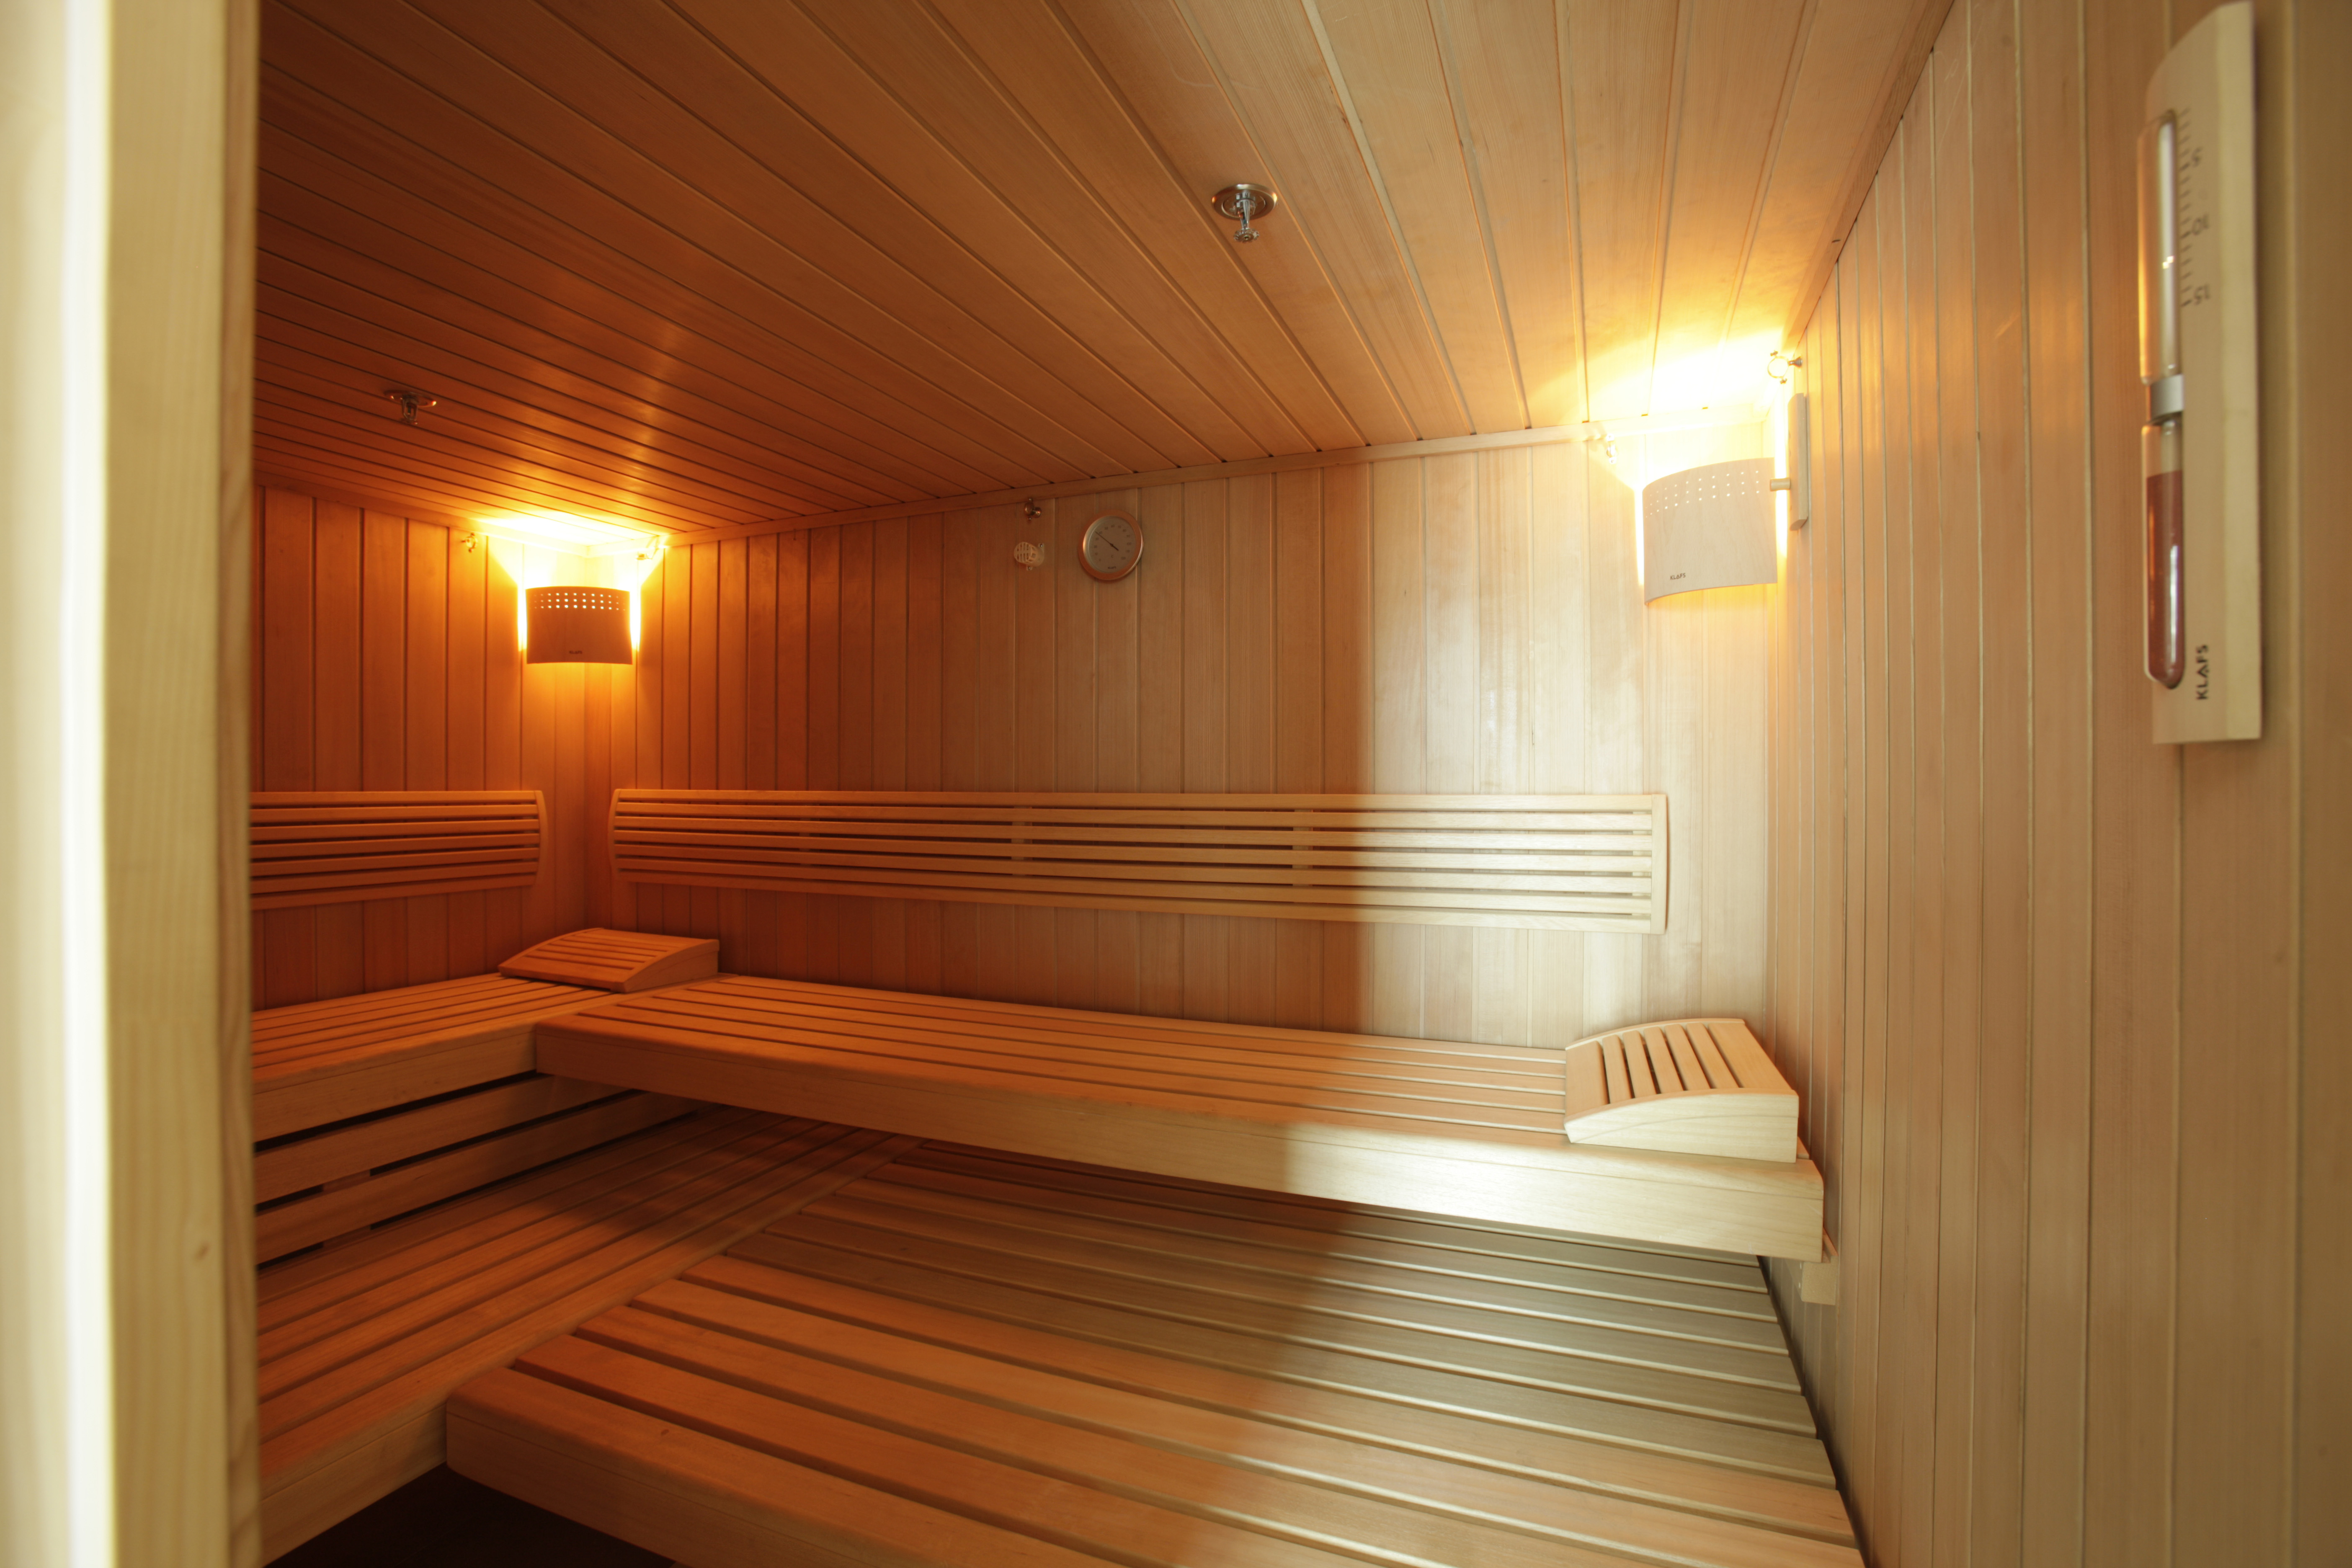 Sauna st petersburg spa hotel with pool and sauna in st petersburg saun in taleon spa altavistaventures Images